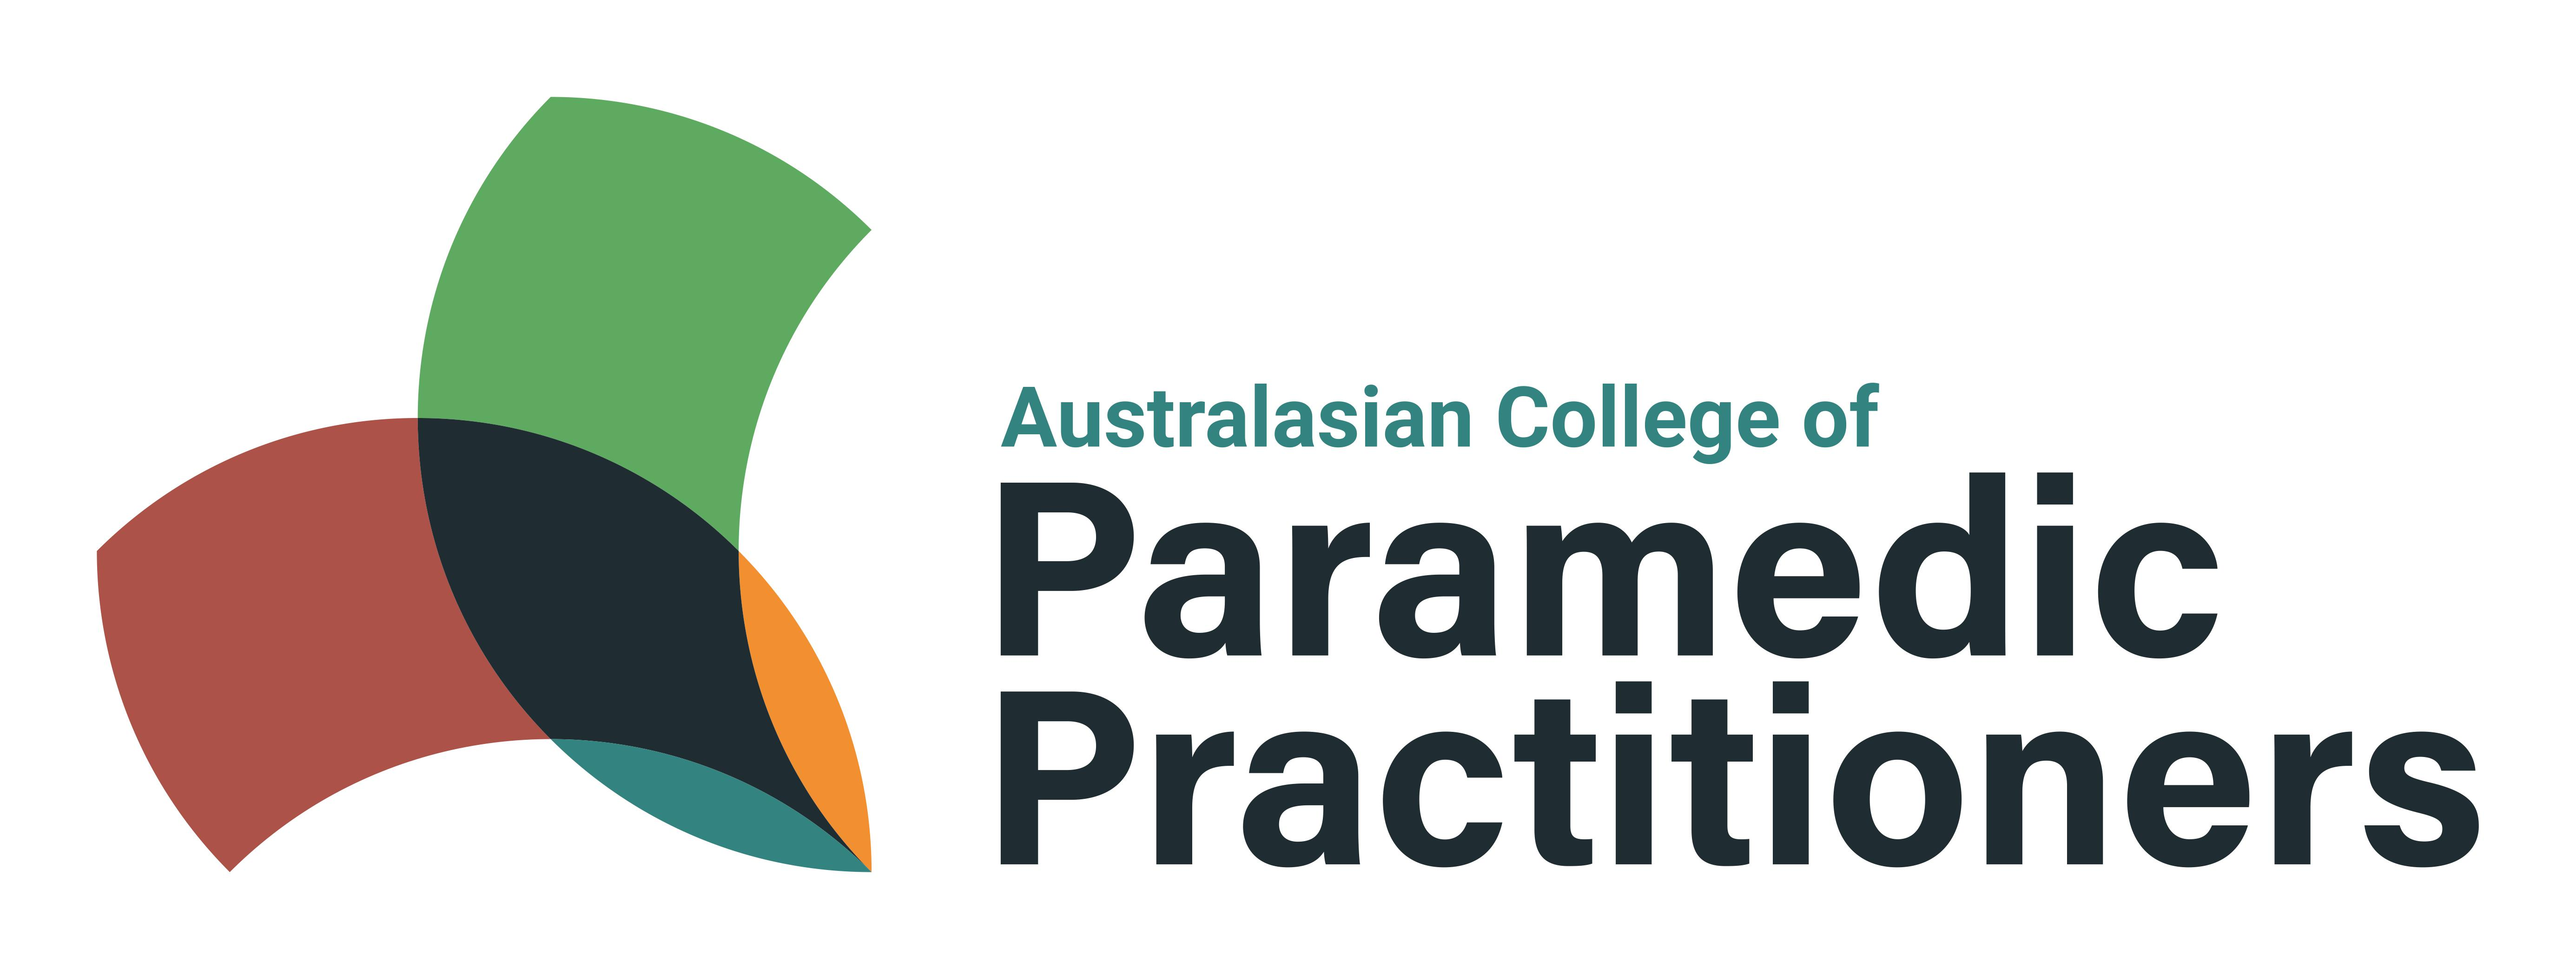 The Australasian College of Paramedic Practitioners (ACPP)